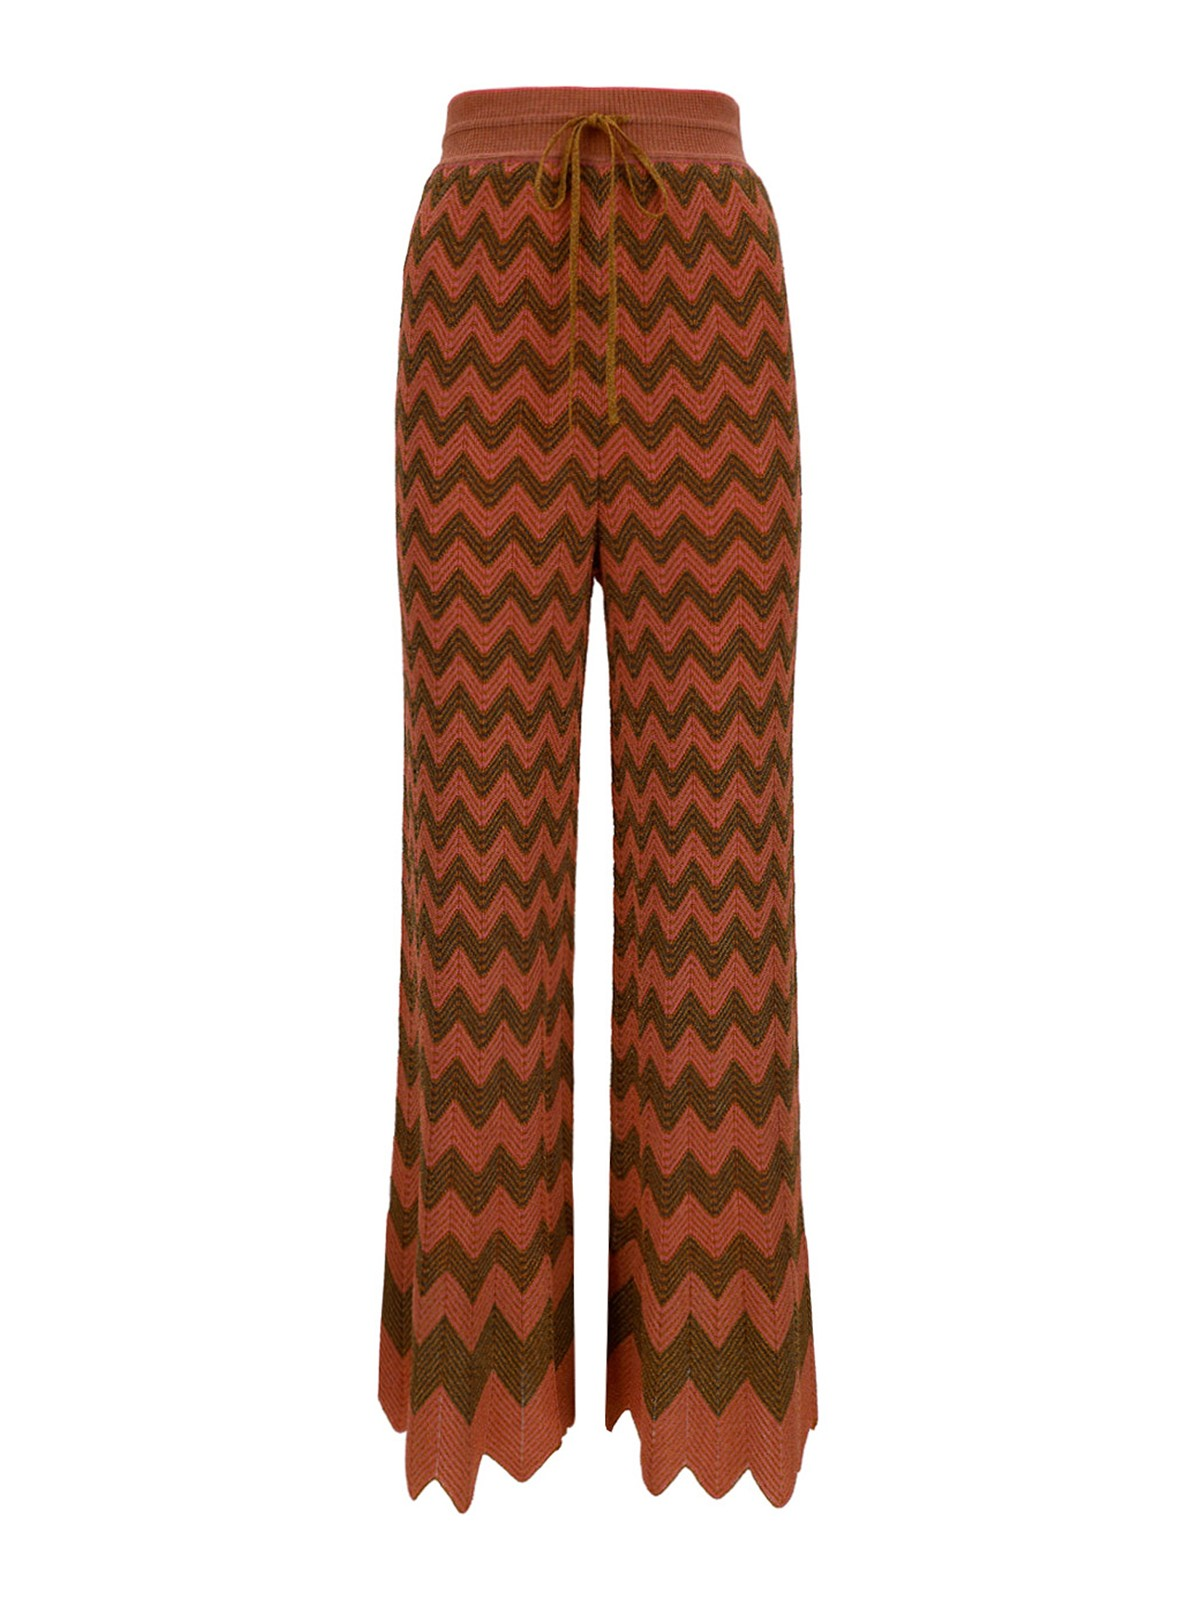 M Missoni VISCOSE BLEND PANTS